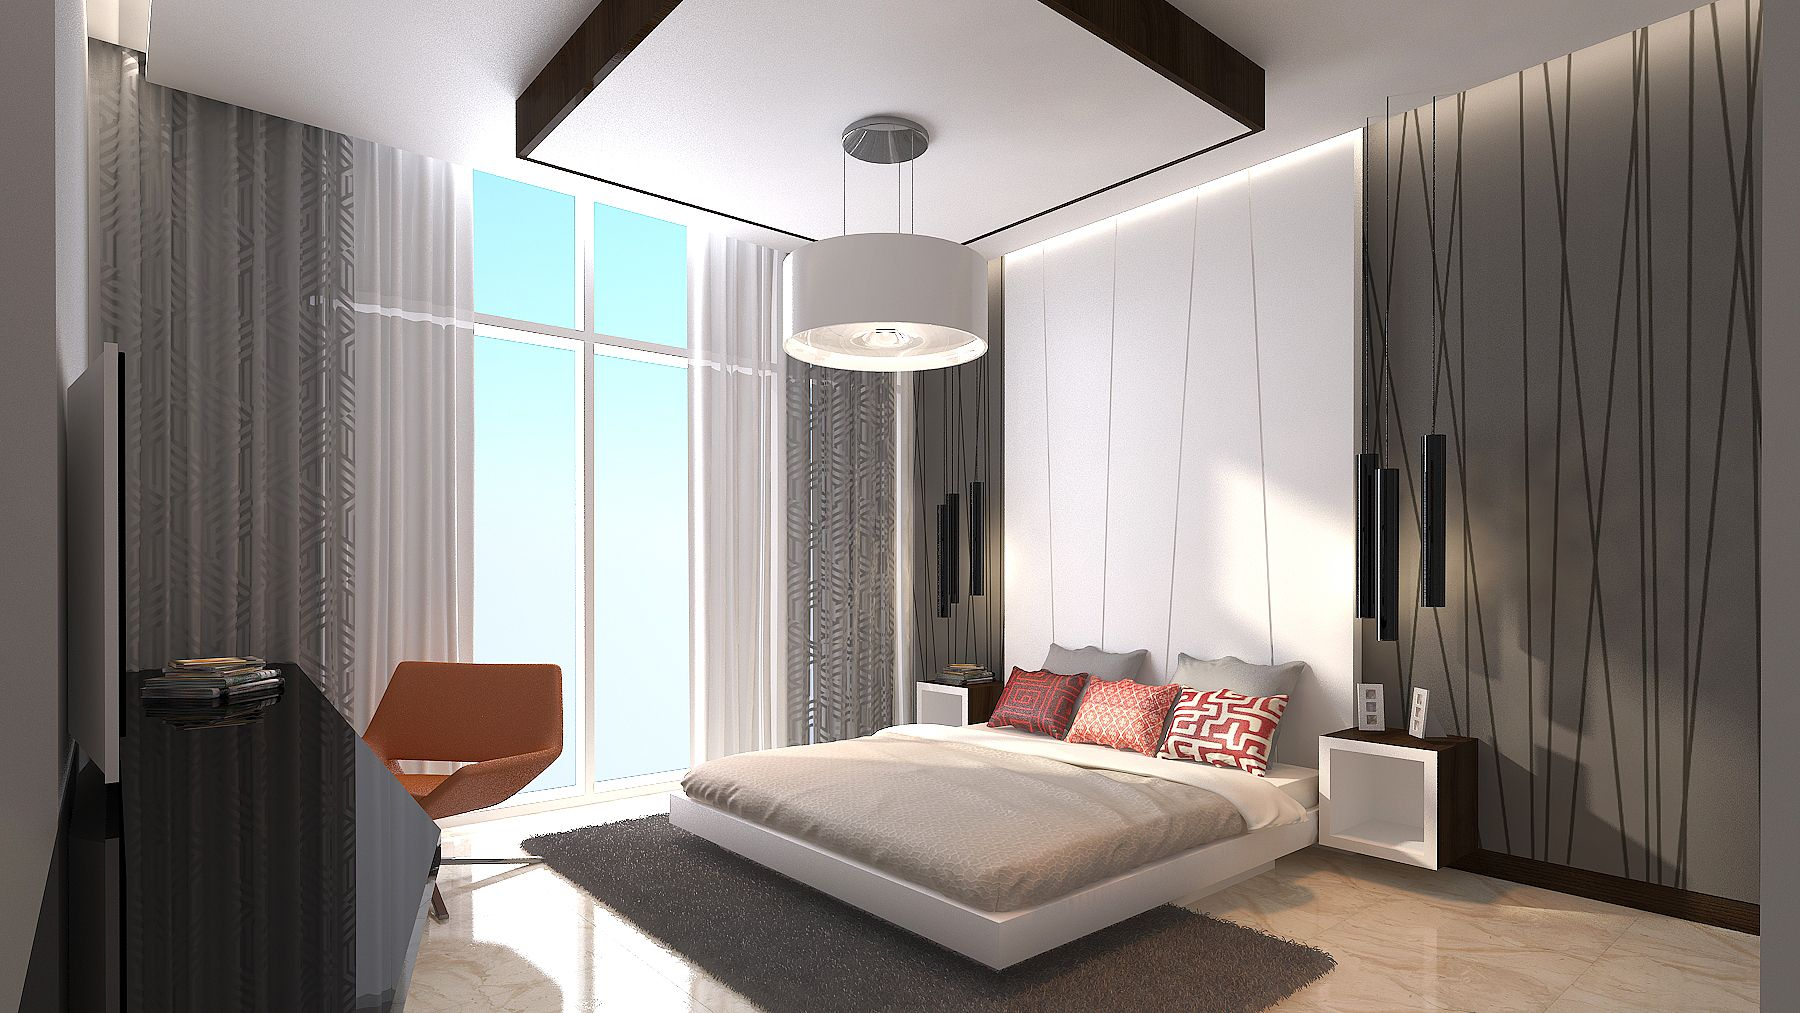 Modern Interior Design Modern Bedroom Master Bedroom Geometric Interior Design 3ds Max 3d